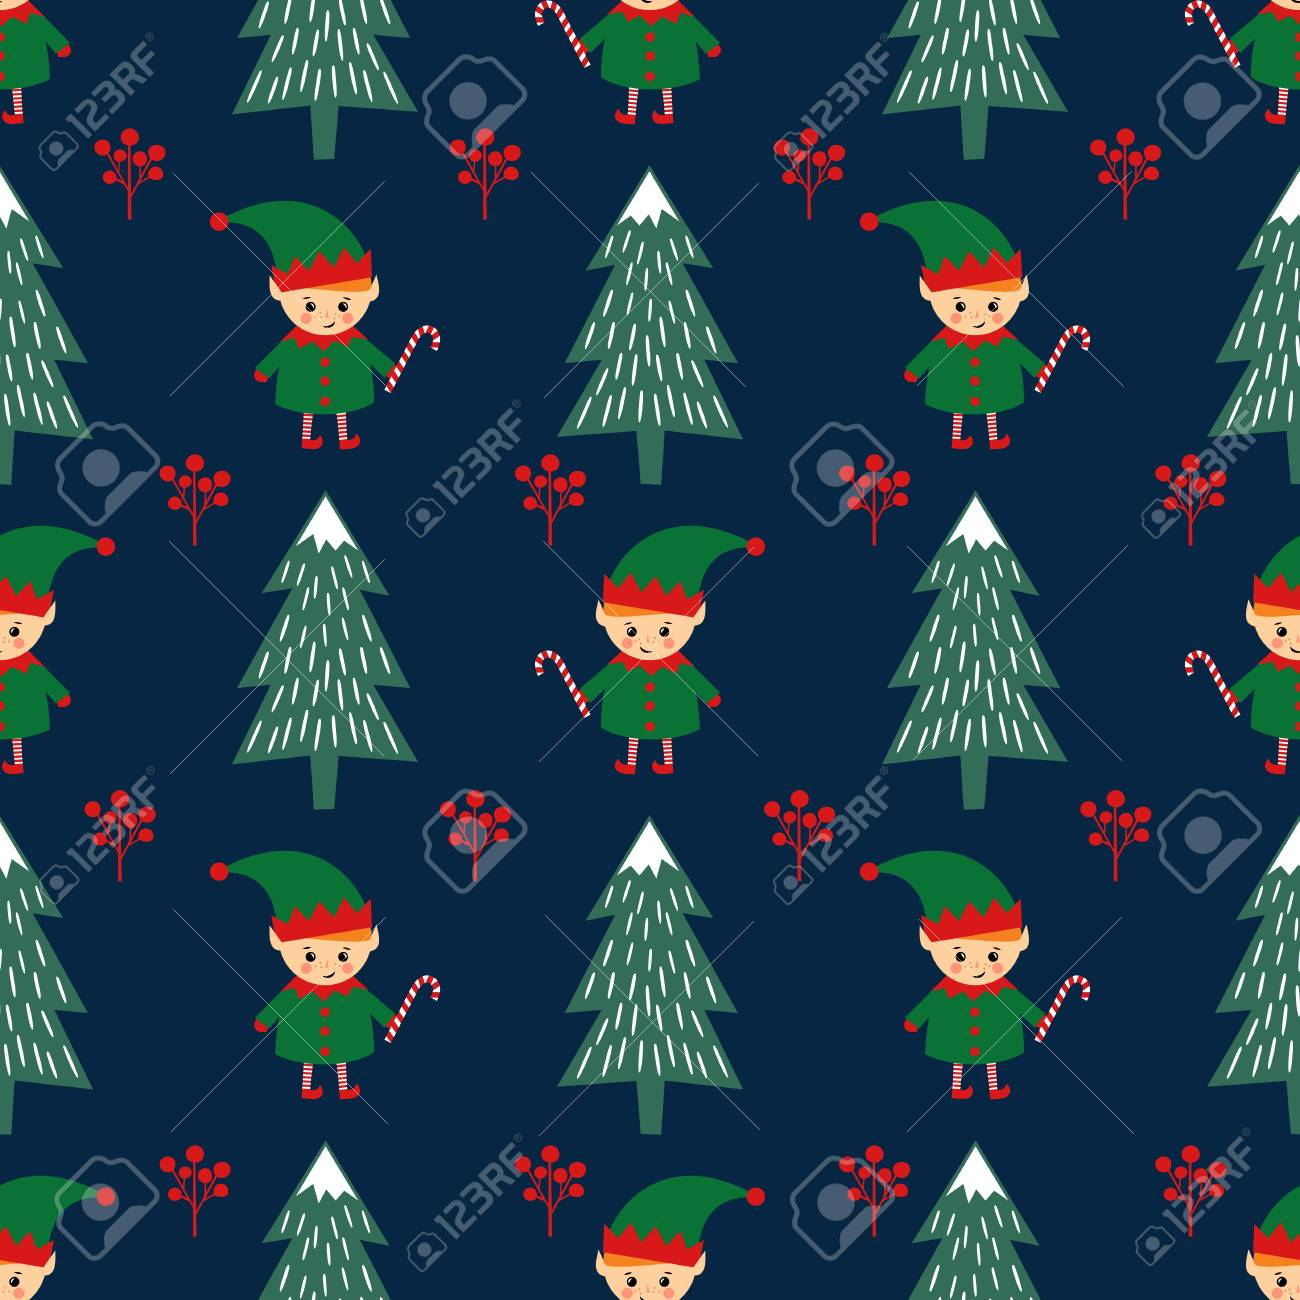 69694854 christmas tree and elf with candy cane seamless pattern on dark blue background cute winter holidays